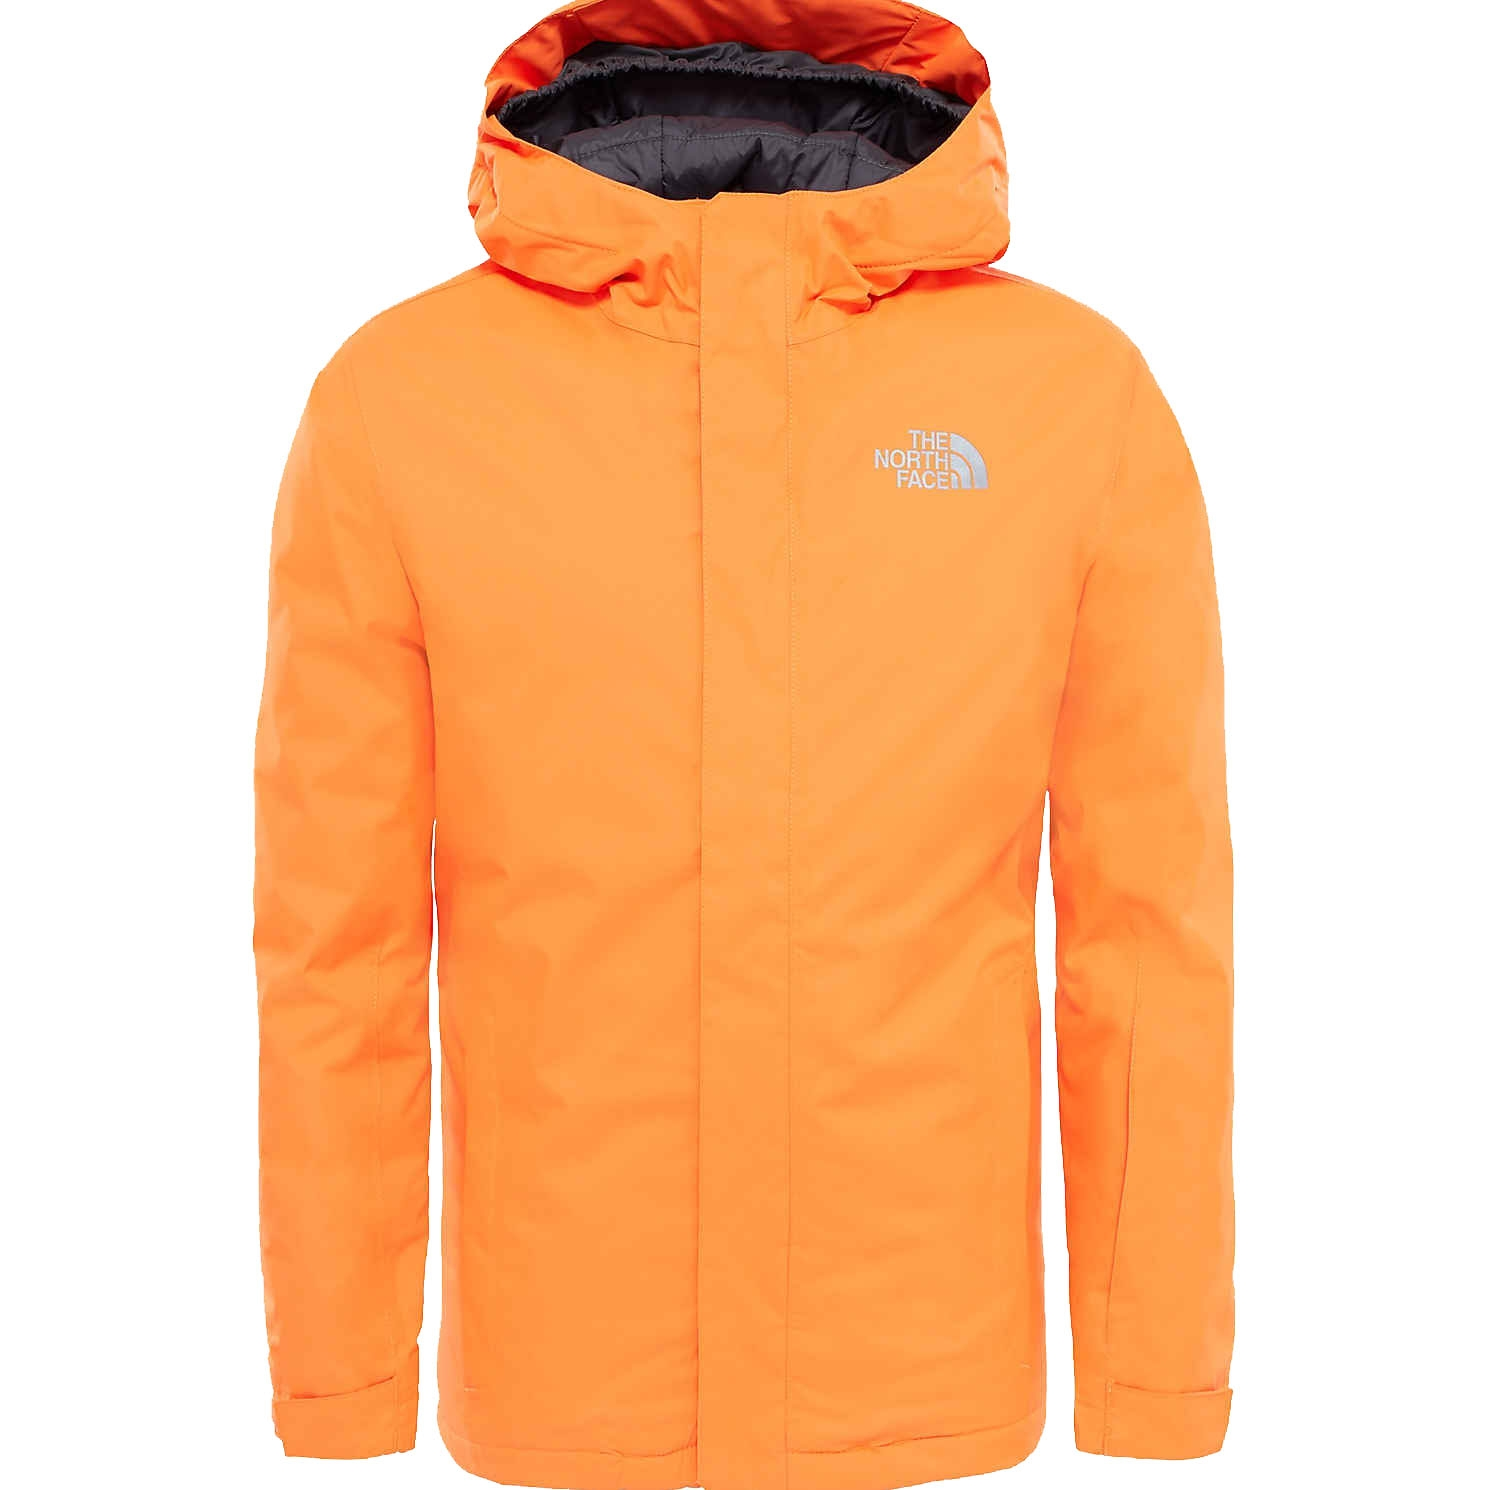 1ddd7bcb2d -15%. Veste De Ski The North Face Y Snow Quest Orange. THE NORTH FACE.  99,95€ 84,96€. Plus de produits. Livraison 24h. Paiement en 3x